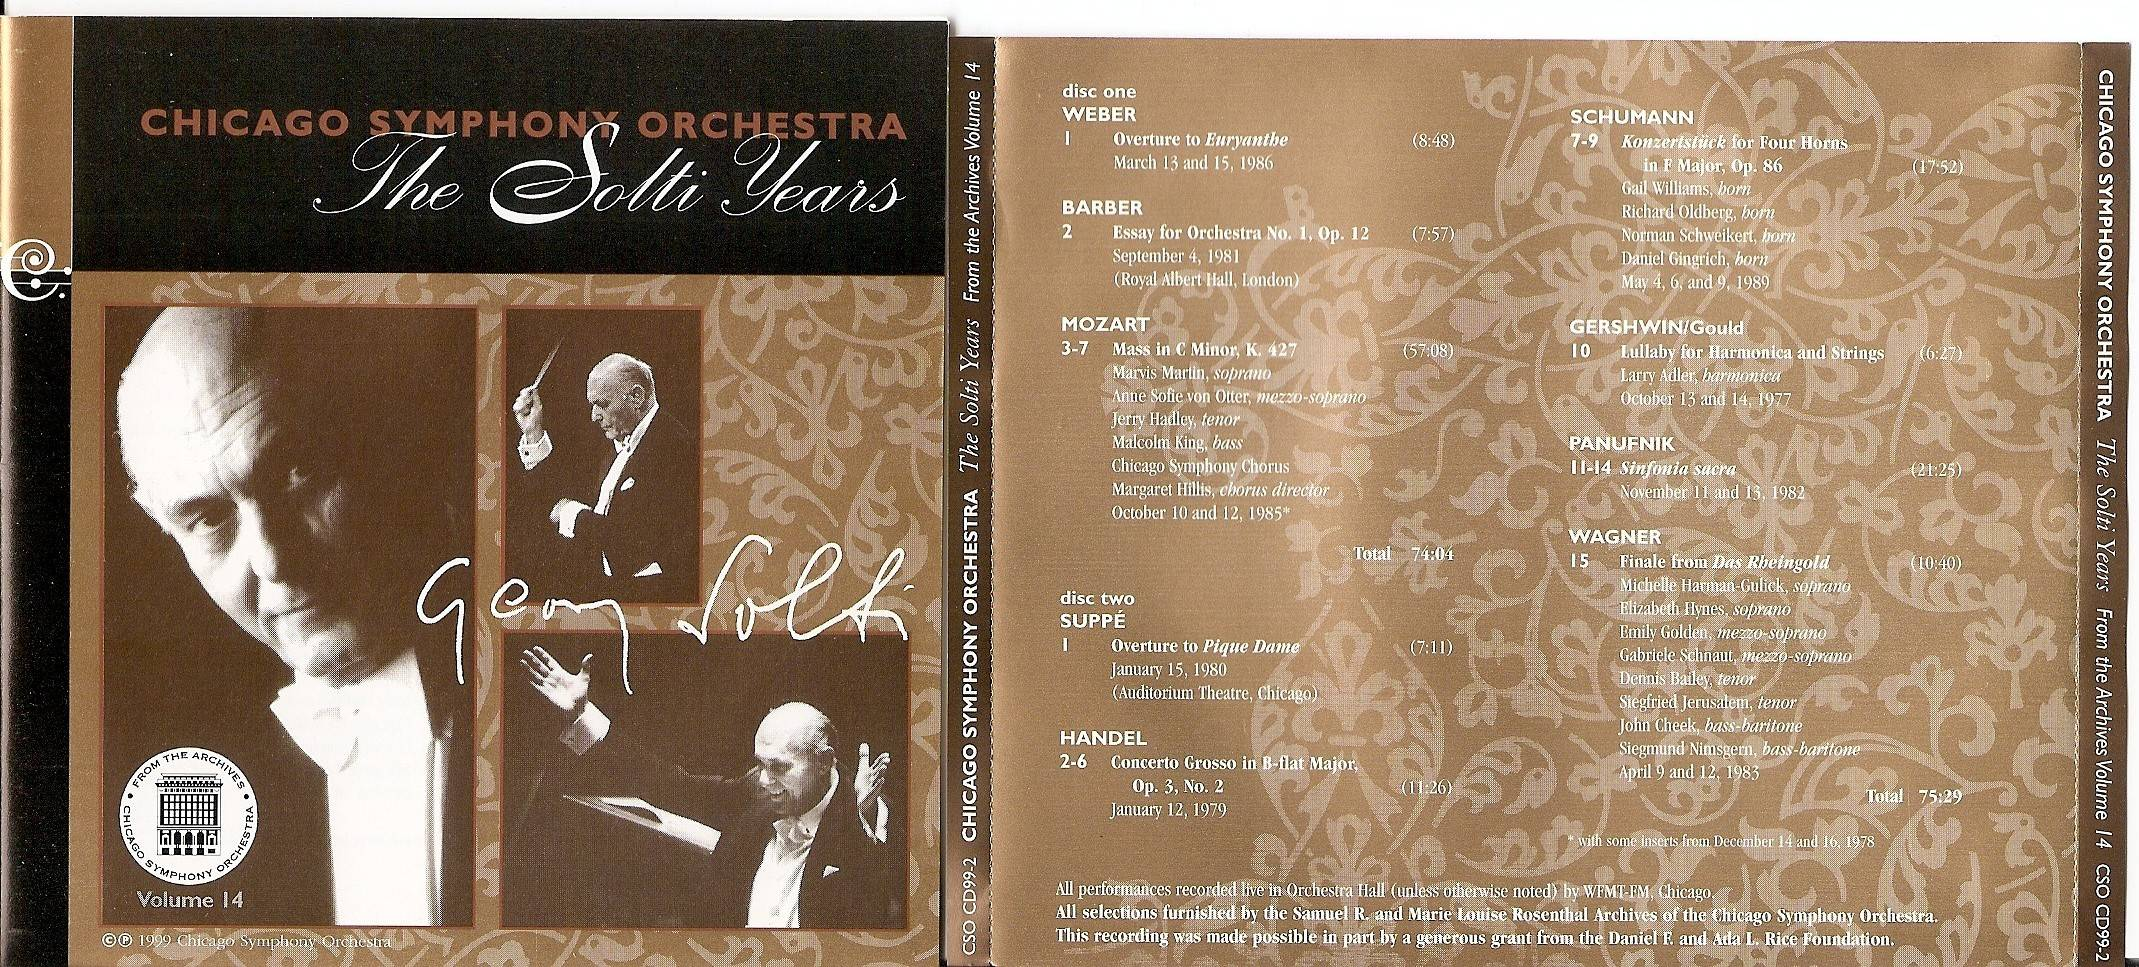 Chicago Symphony Orchestra - From The Archives, Vol.14: The Solti Years, 2-CD set (1999)